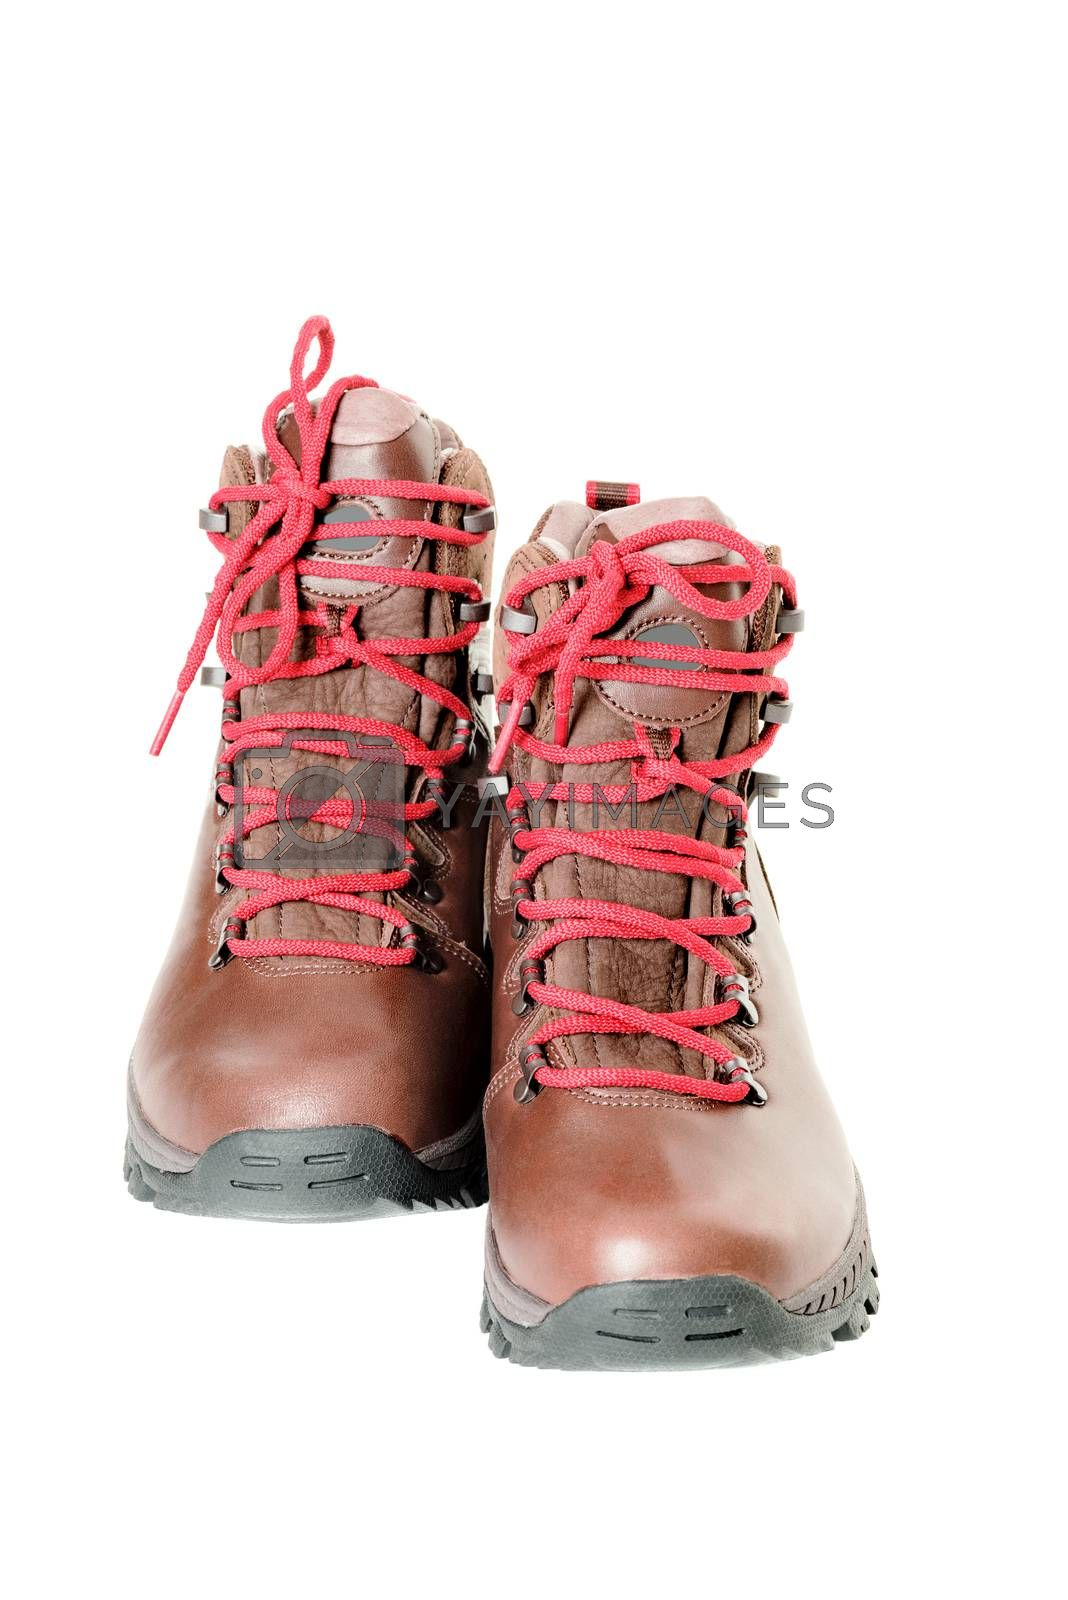 pair of leather hiking boots isolated on white front view by Nanisimova